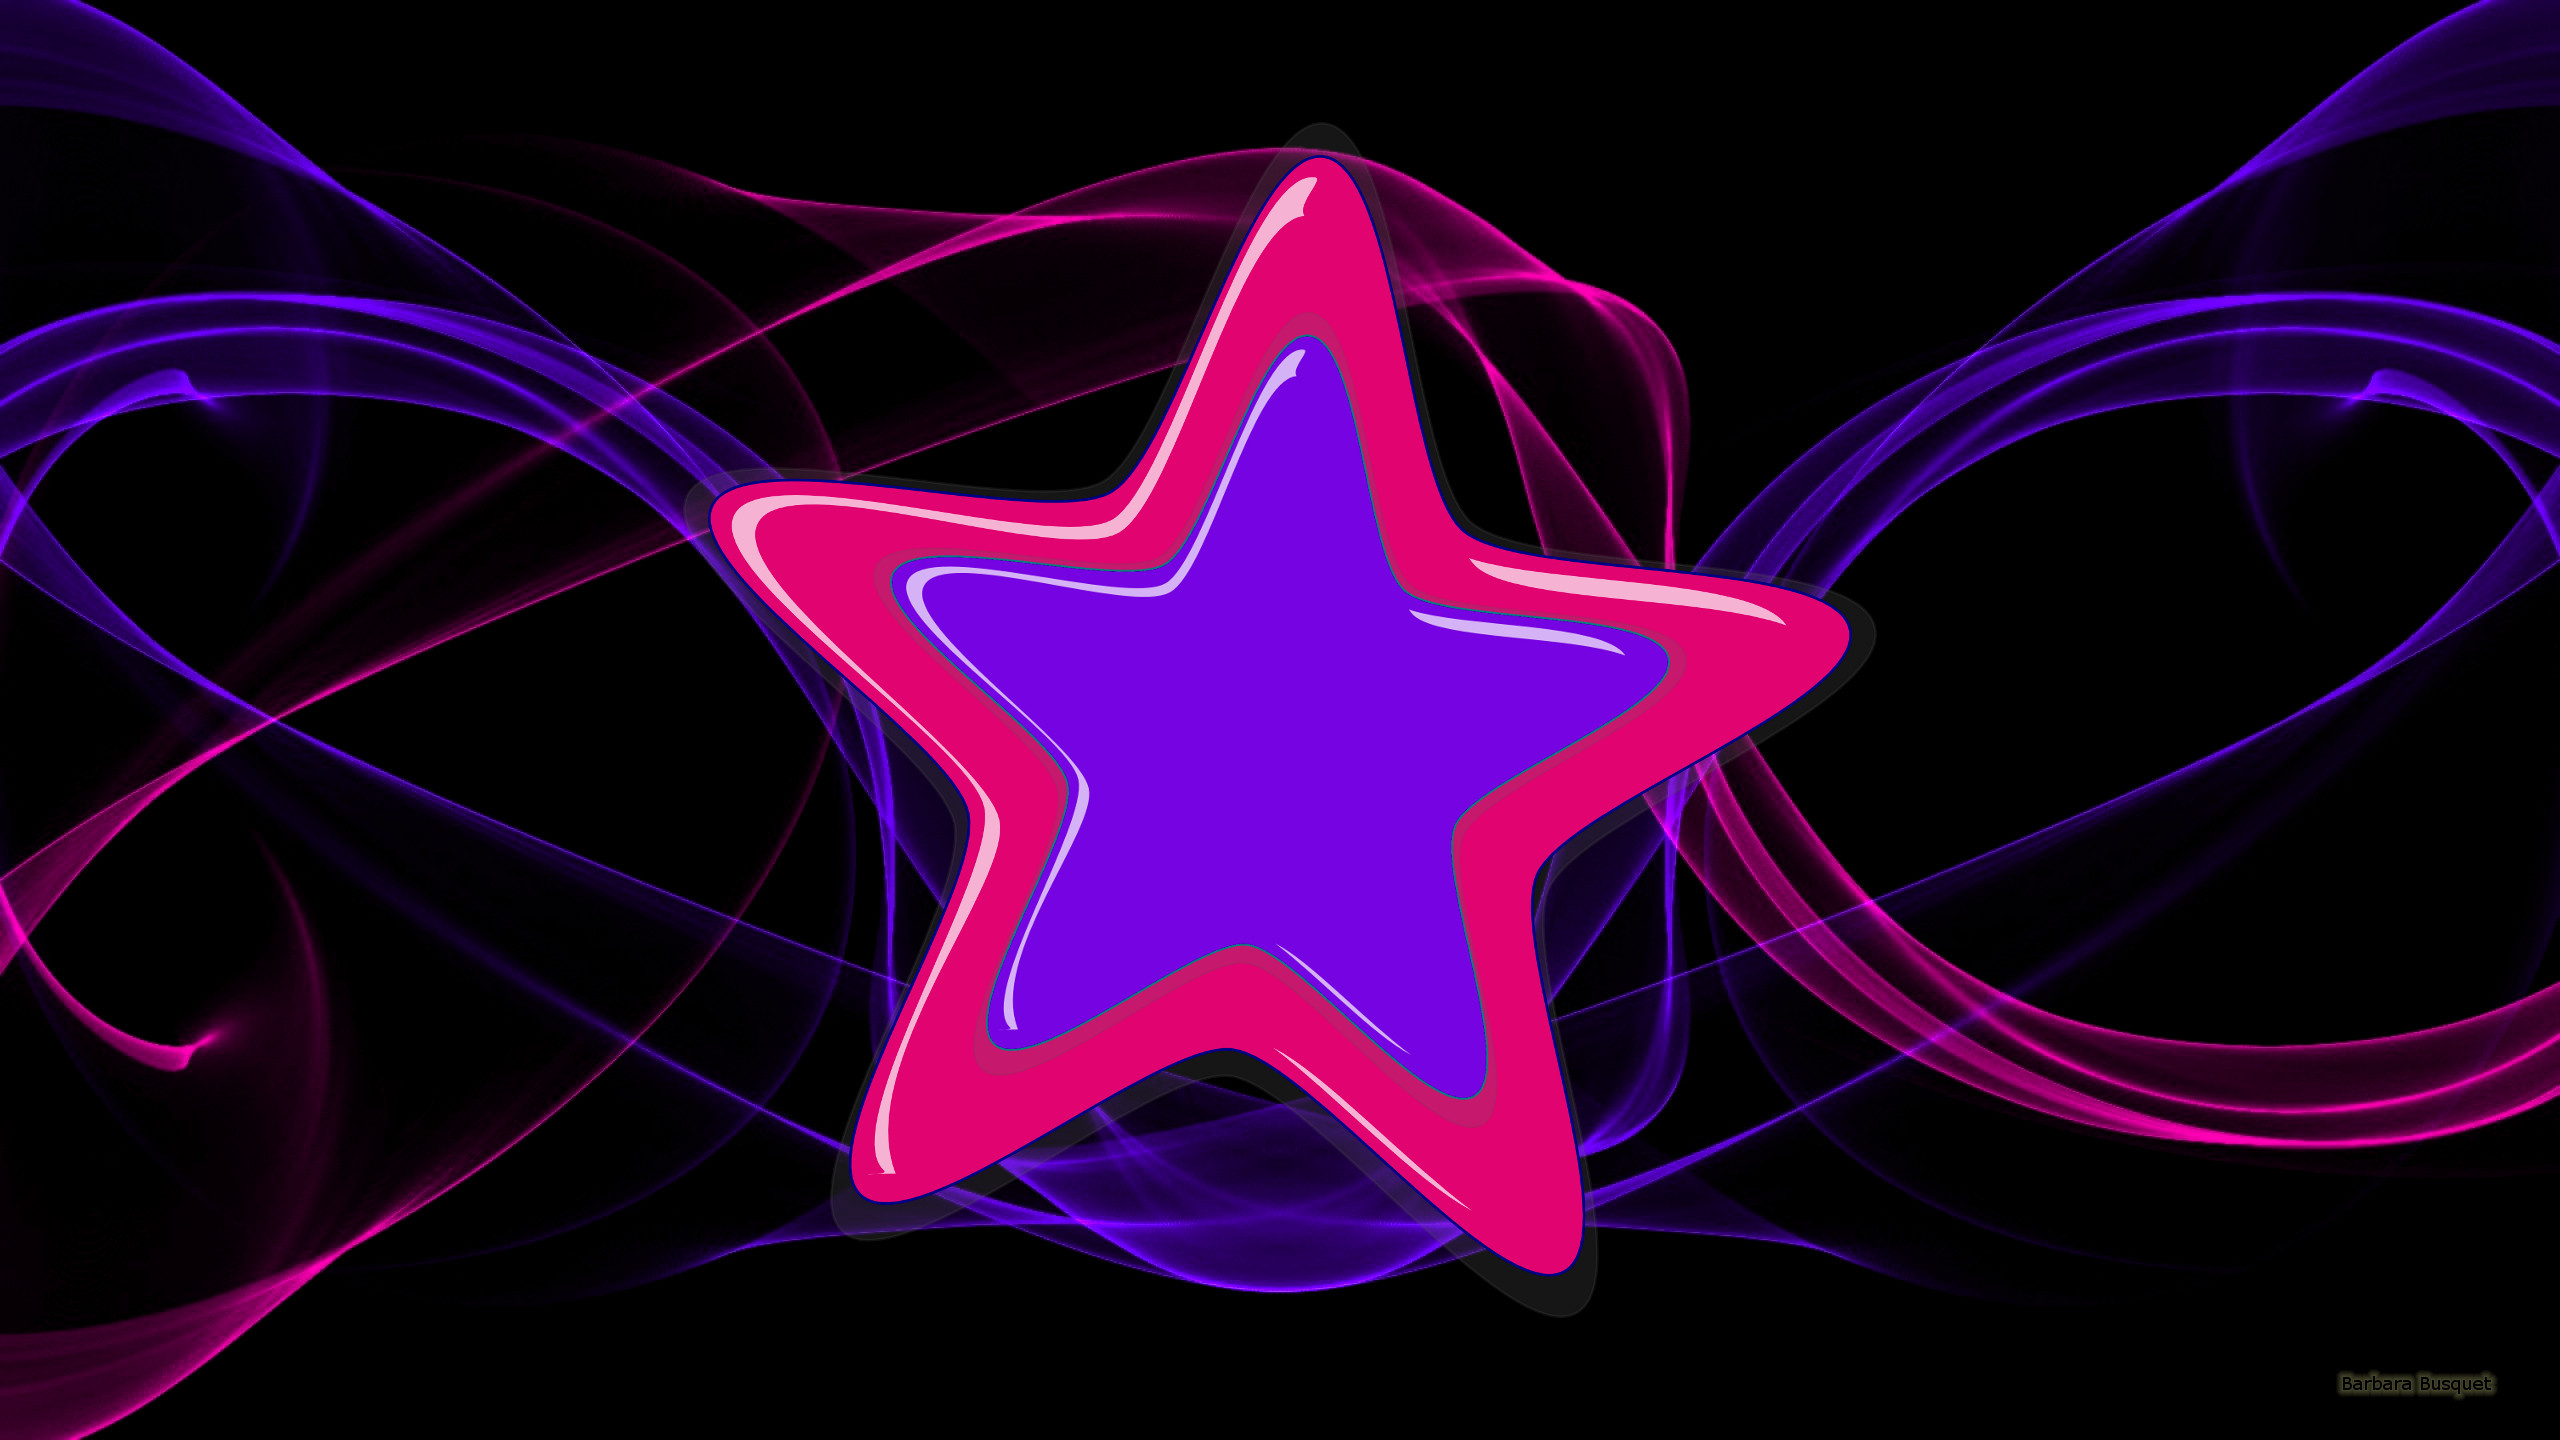 Res: 2560x1440, Black wallpaper with purple and pink stars.